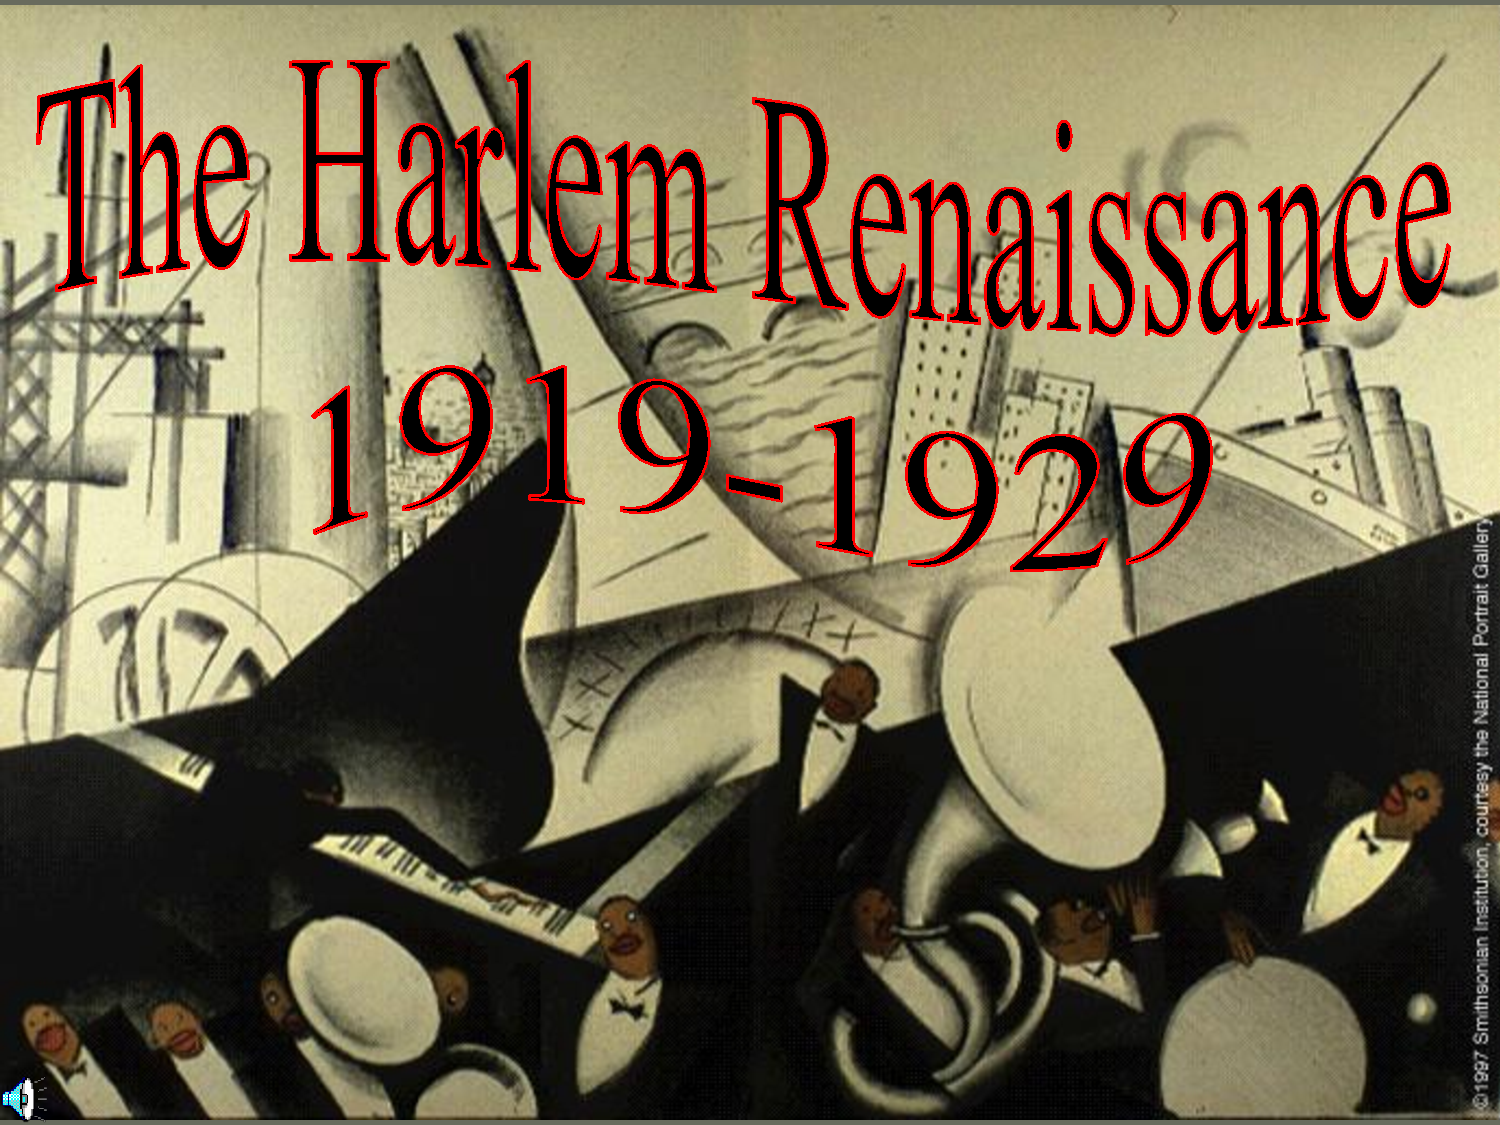 Healthy Living Essay Harlem Renaissance African American En Harlem History Literature  Music Renaissance Social Studies  Glogster Edu  Interactive Multimedia  Posters High School Narrative Essay Examples also Essay On Religion And Science Harlem Renaissance African American En Harlem History  Examples Of Argumentative Thesis Statements For Essays